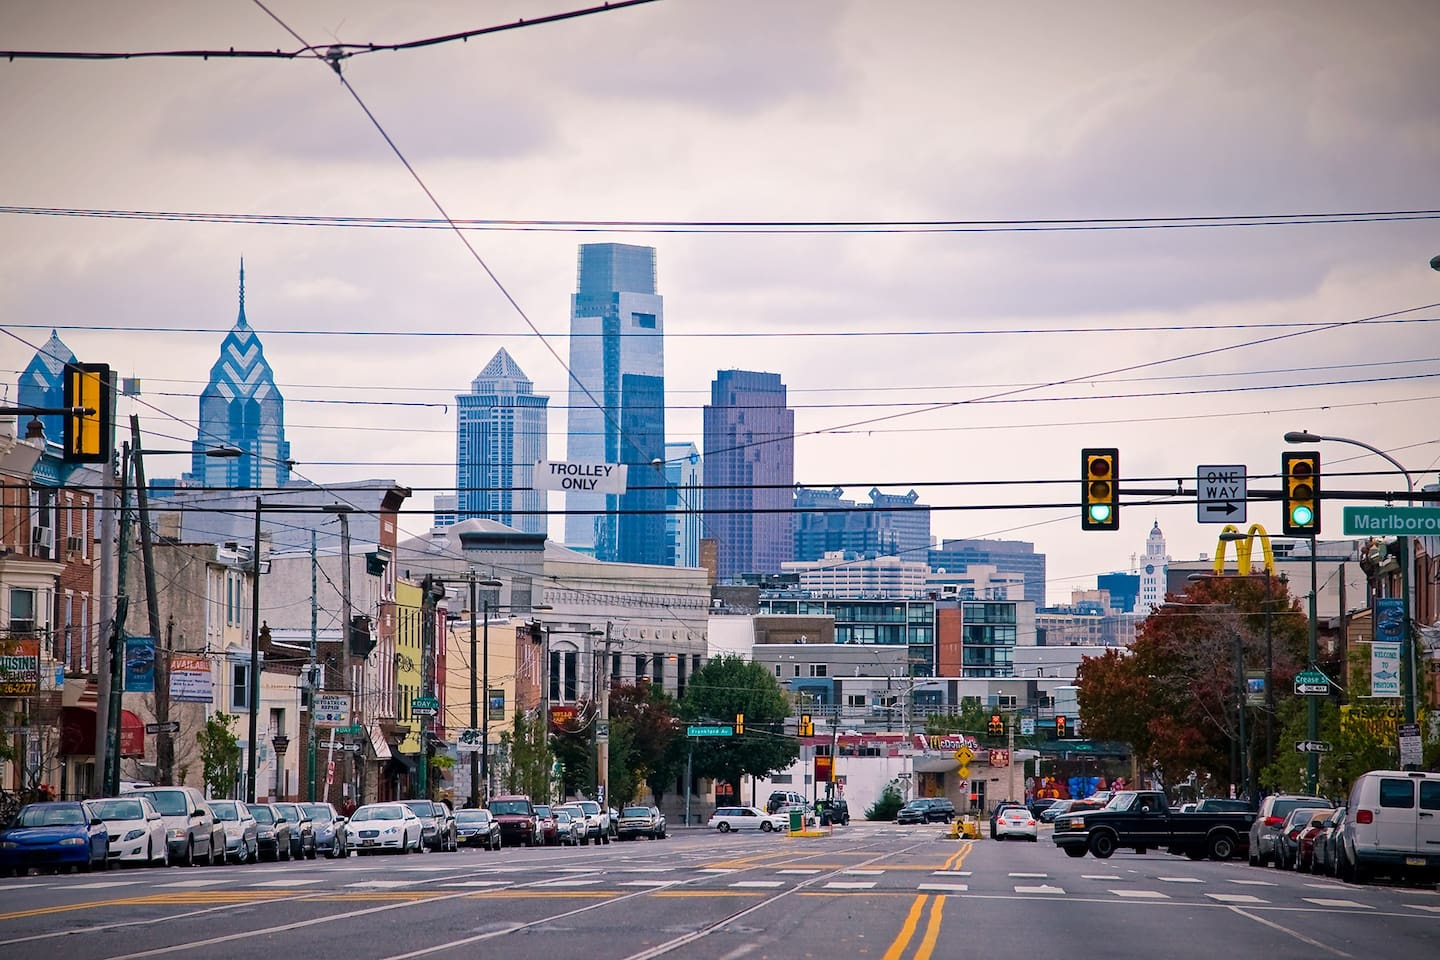 View of the city from the Fishtown neighborhood. Center city is easily accessible (10-15 mins) by train/metro/subway, bus, bikes, uber/lyft/taxi cab. And there is tons to do in Fishtown (cafes, restaurants, bars/pubs/breweries, parks, art, music venues, and more)!